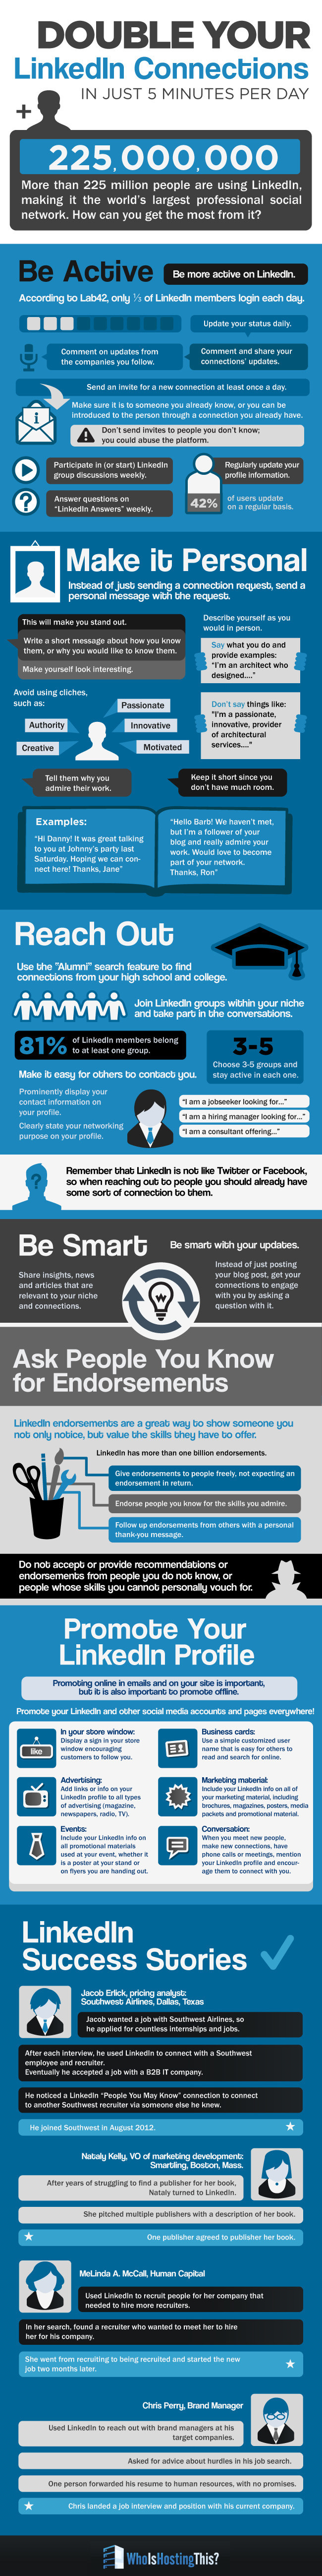 How to Double Your LinkedIn Connections [INFOGRAPHIC]